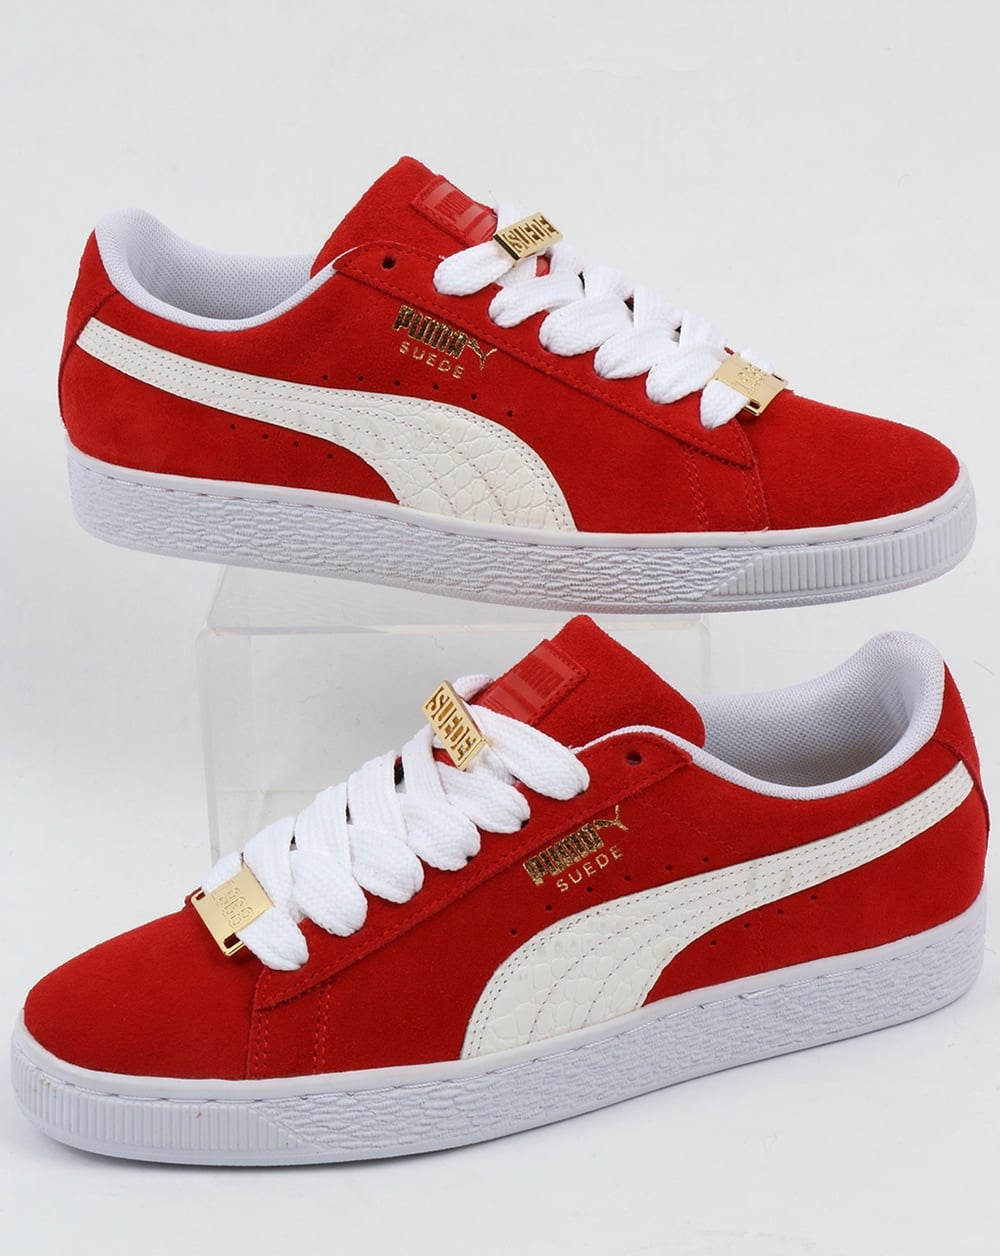 uk availability d082e 524b6 Puma Suede Classic Bboy Fabulous Trainers Red/white